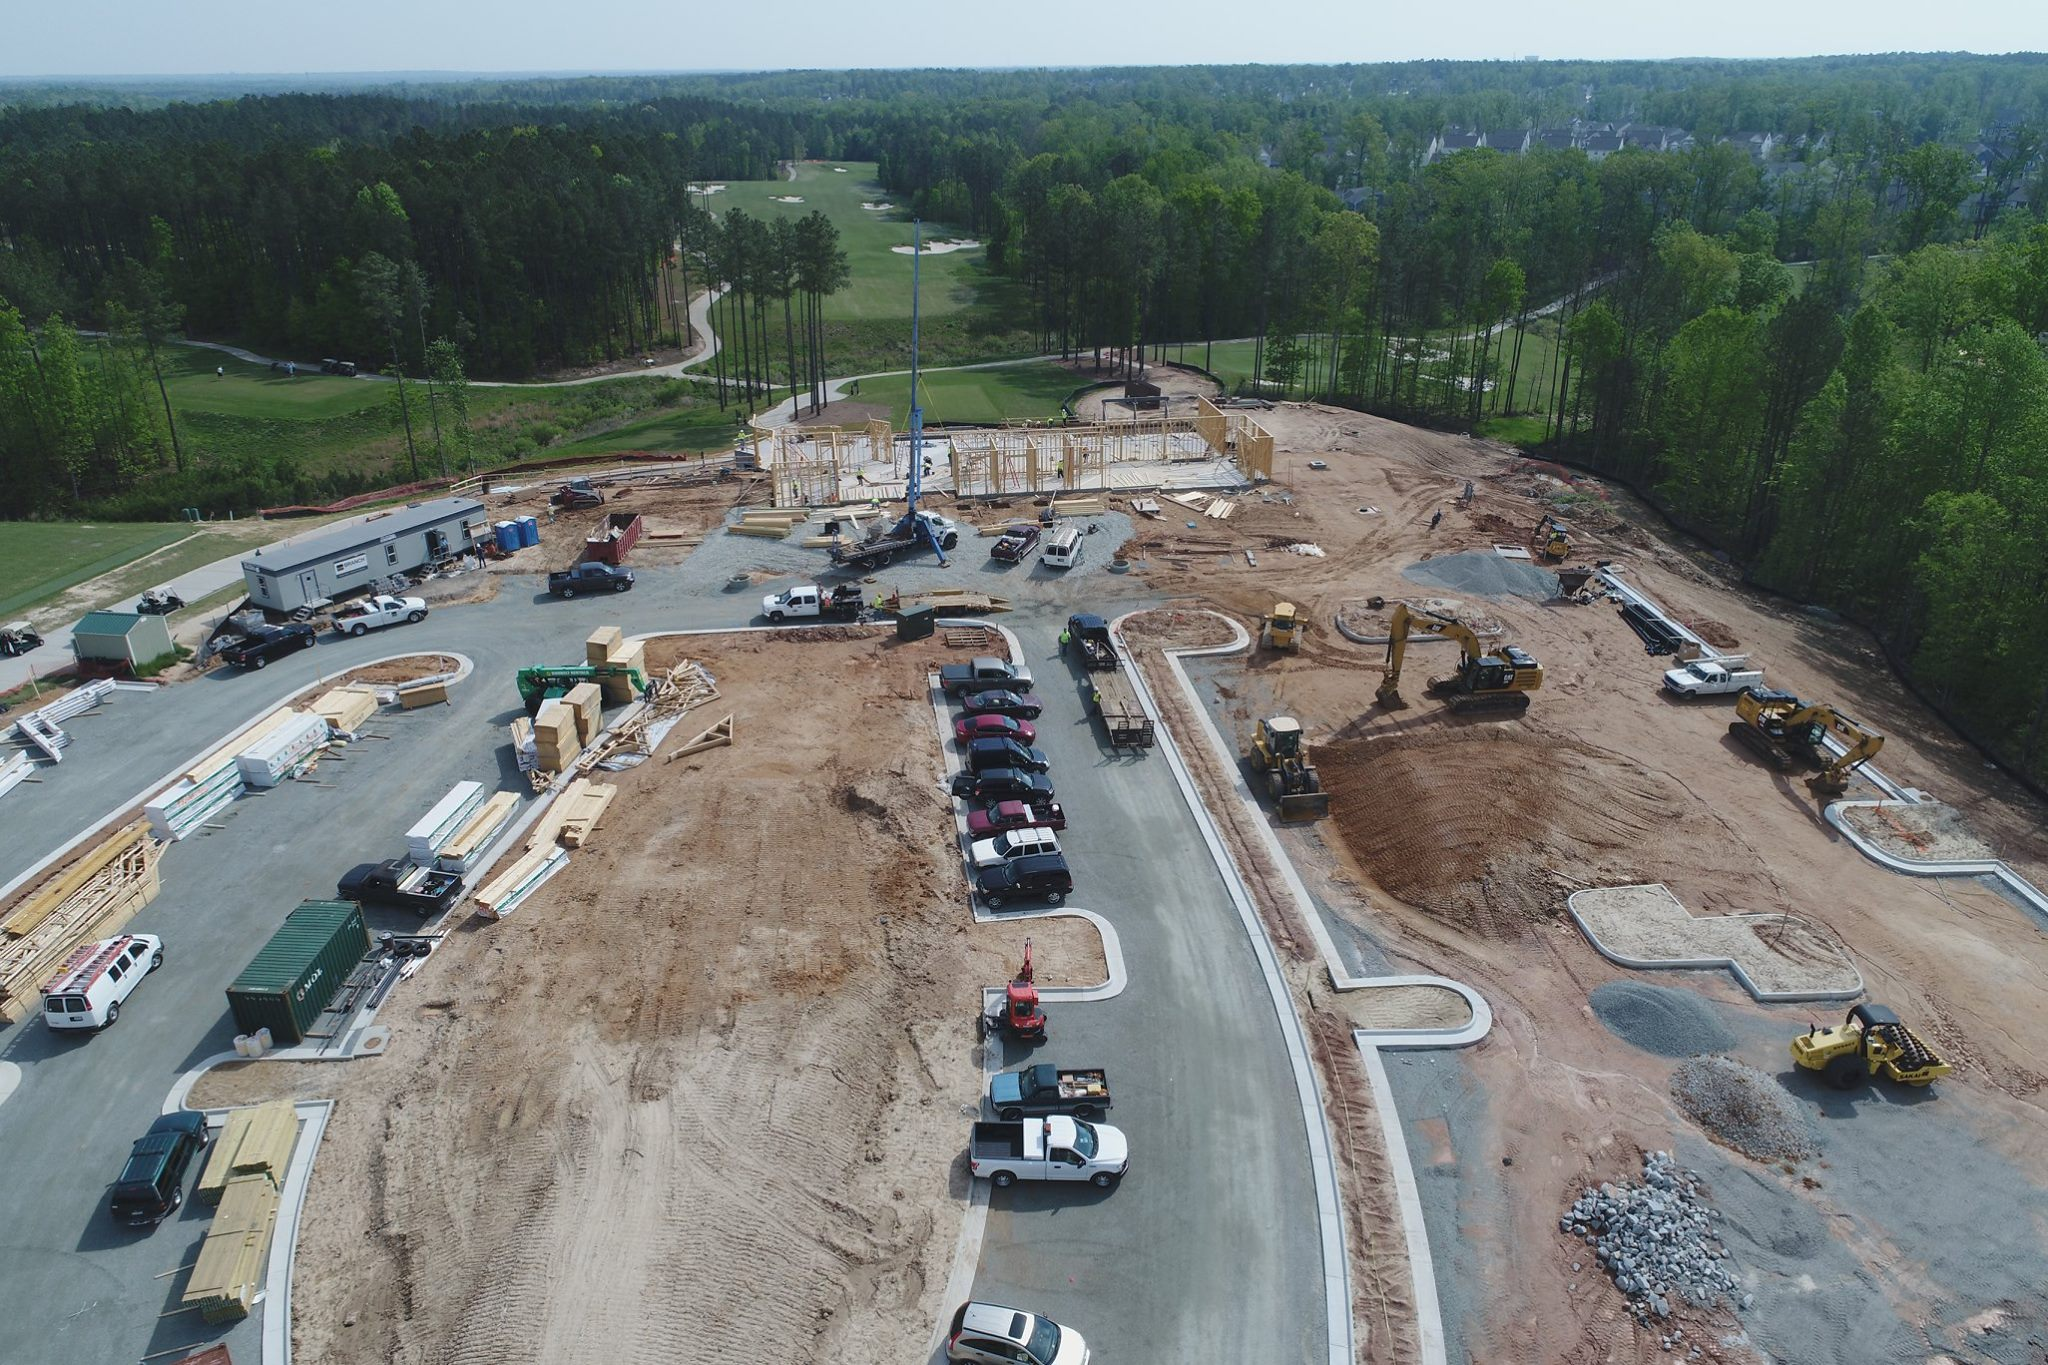 Magnolia Green new golf clubhouse and restaurant construction photos - April 2017